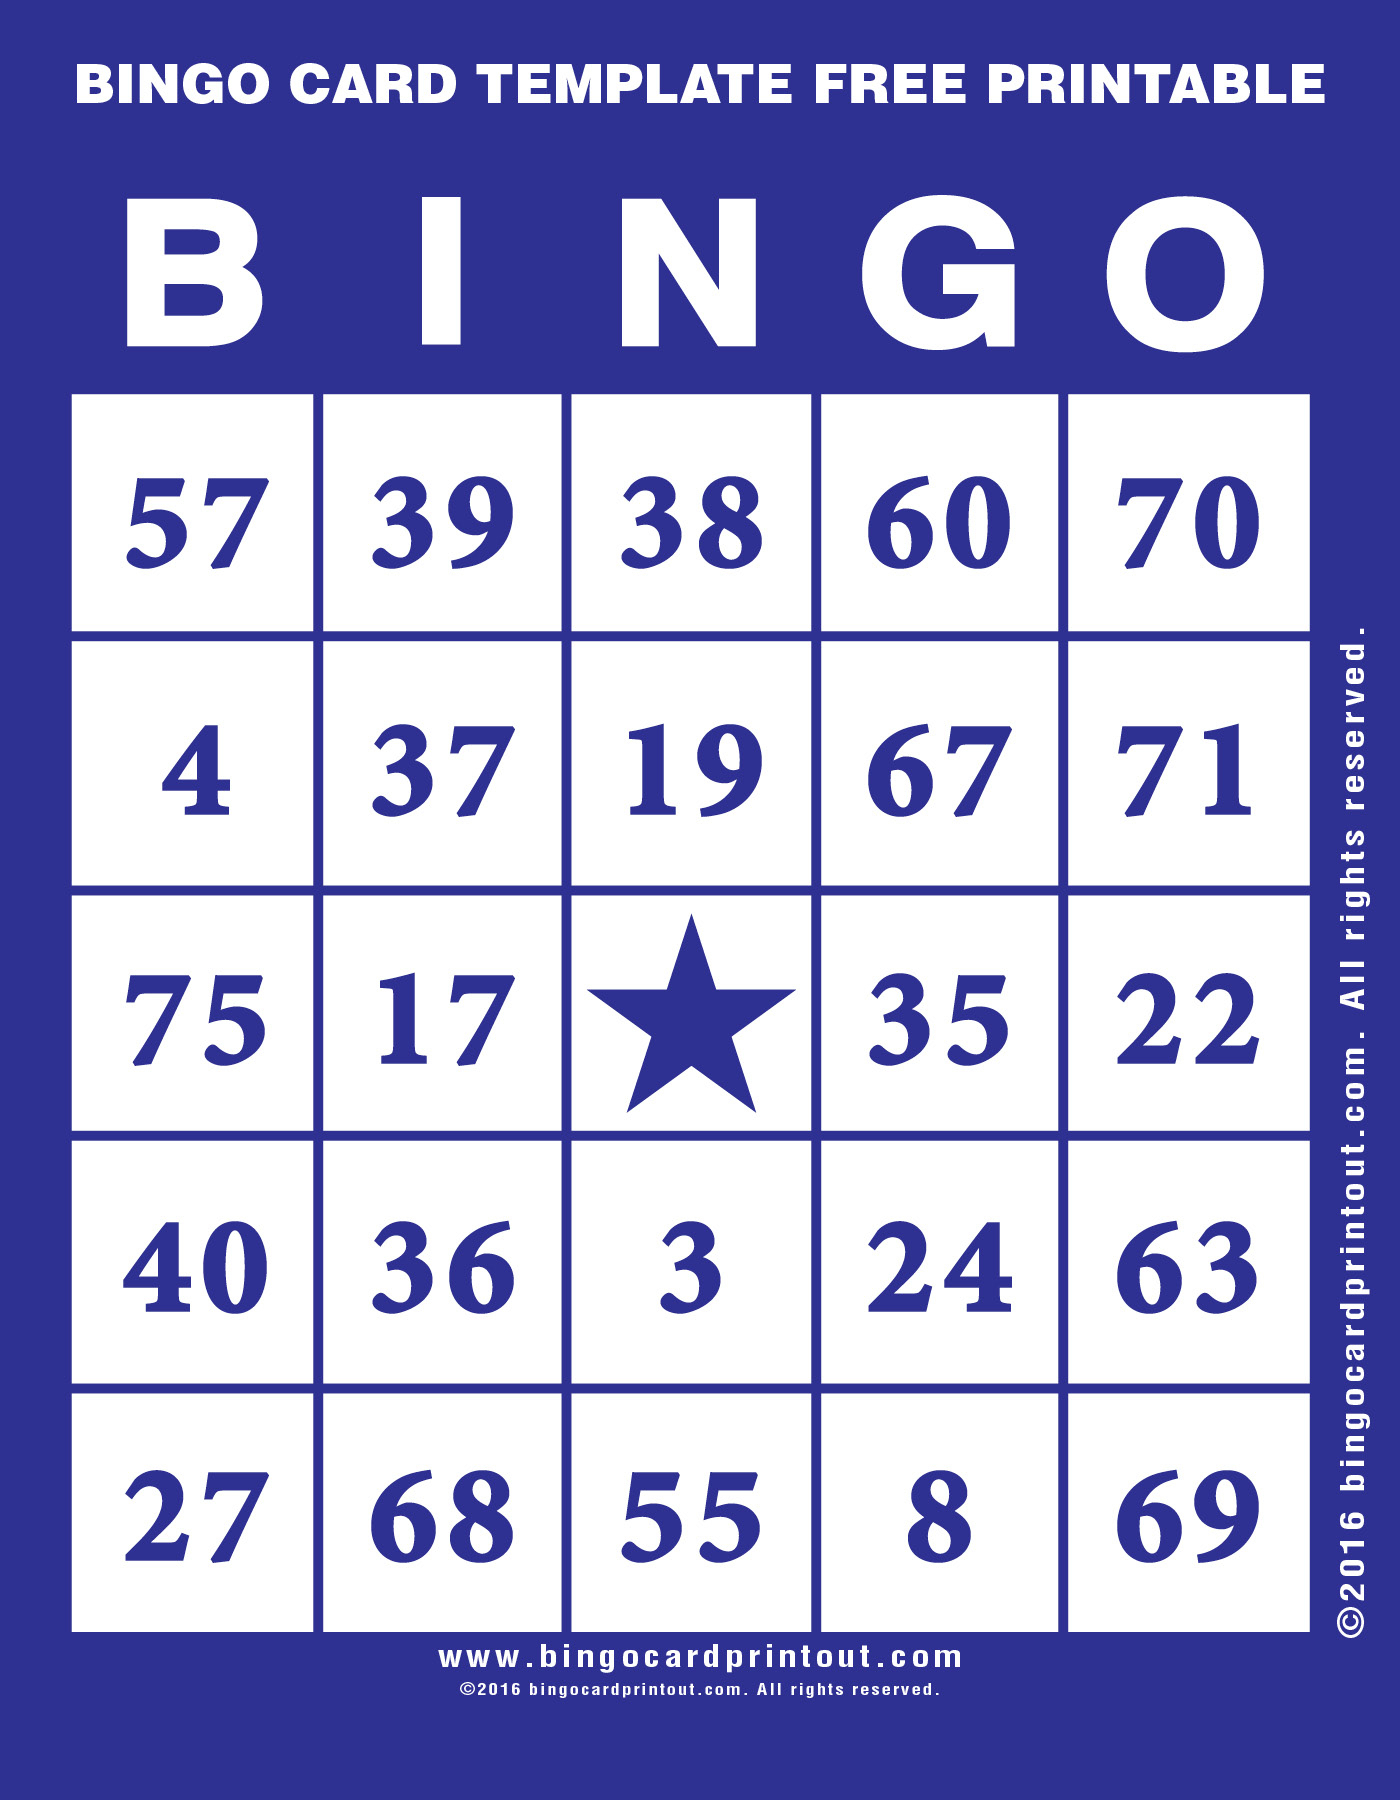 Bingo Card Template Free Printable - Bingocardprintout - Free Printable Bingo Cards 1 75